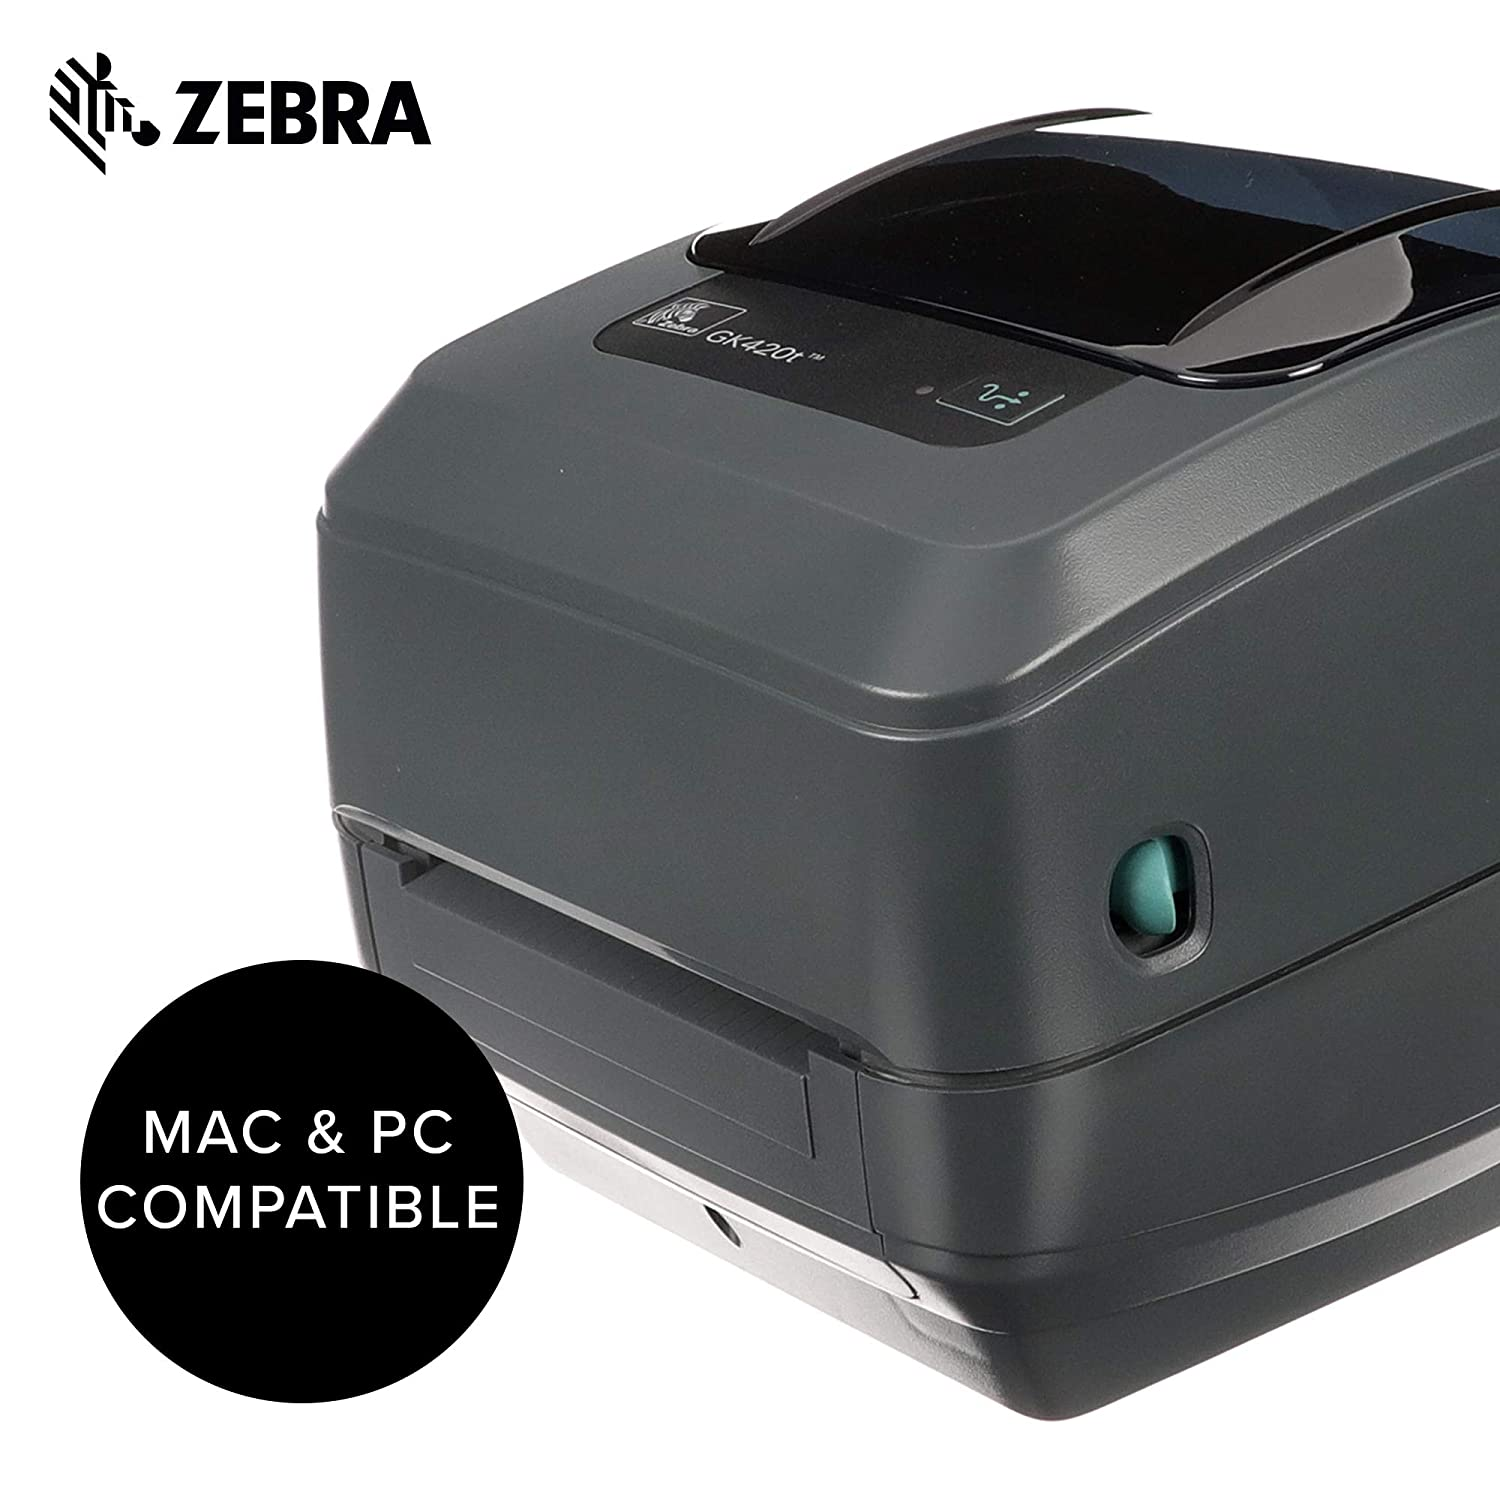 Zebra - GK420t Thermal Transfer Desktop Printer for Labels, Receipts,  Barcodes, Tags, and Wrist Bands - Print Width of 4 in - USB and Ethernet  Port